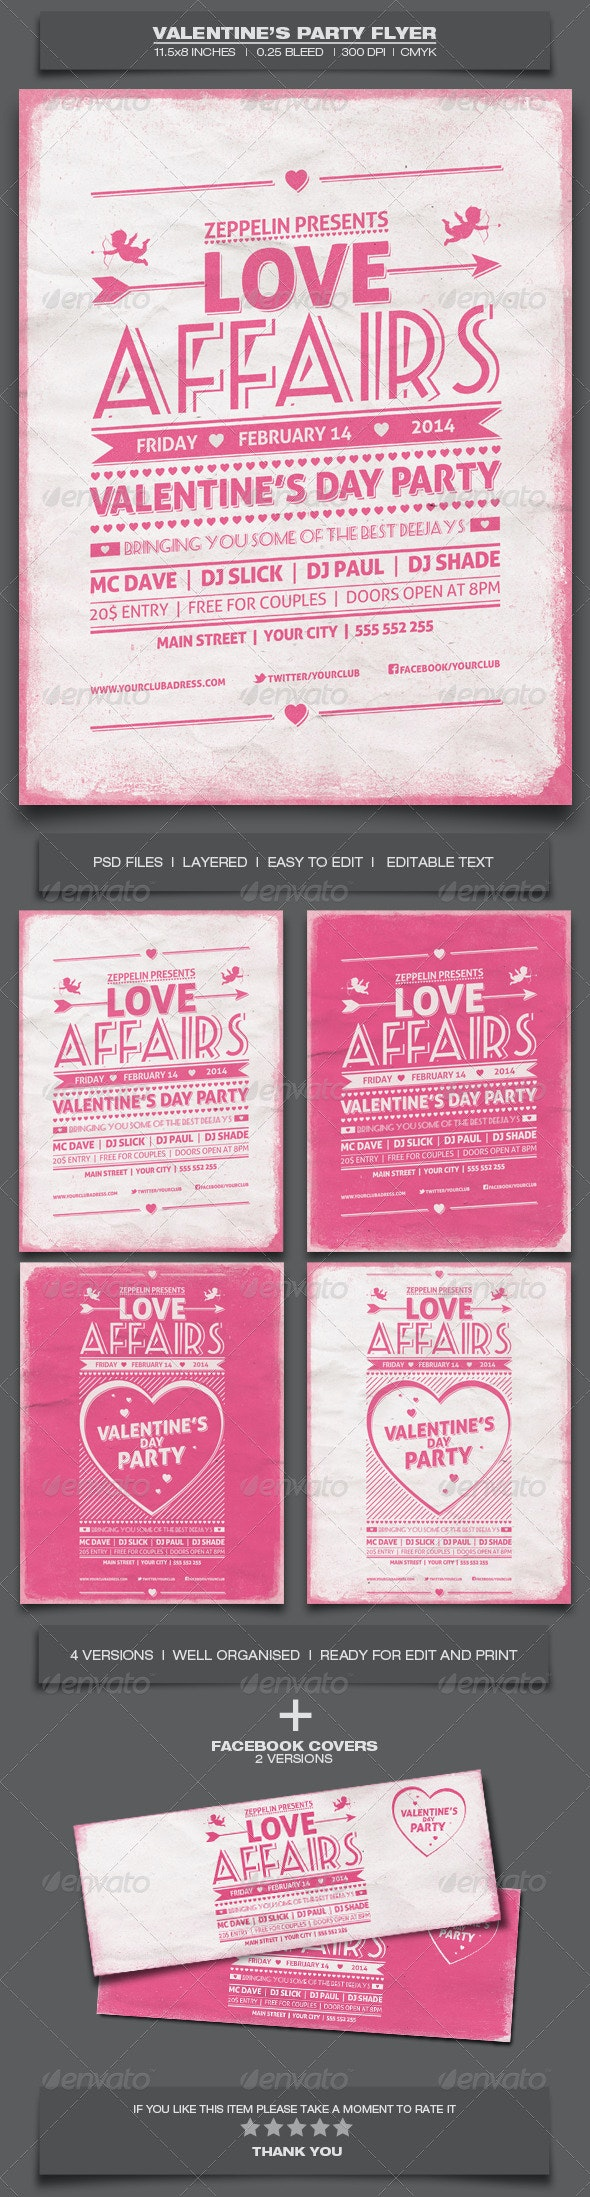 Valentine's Day Party - Event Flyer Template 7 - Holidays Events